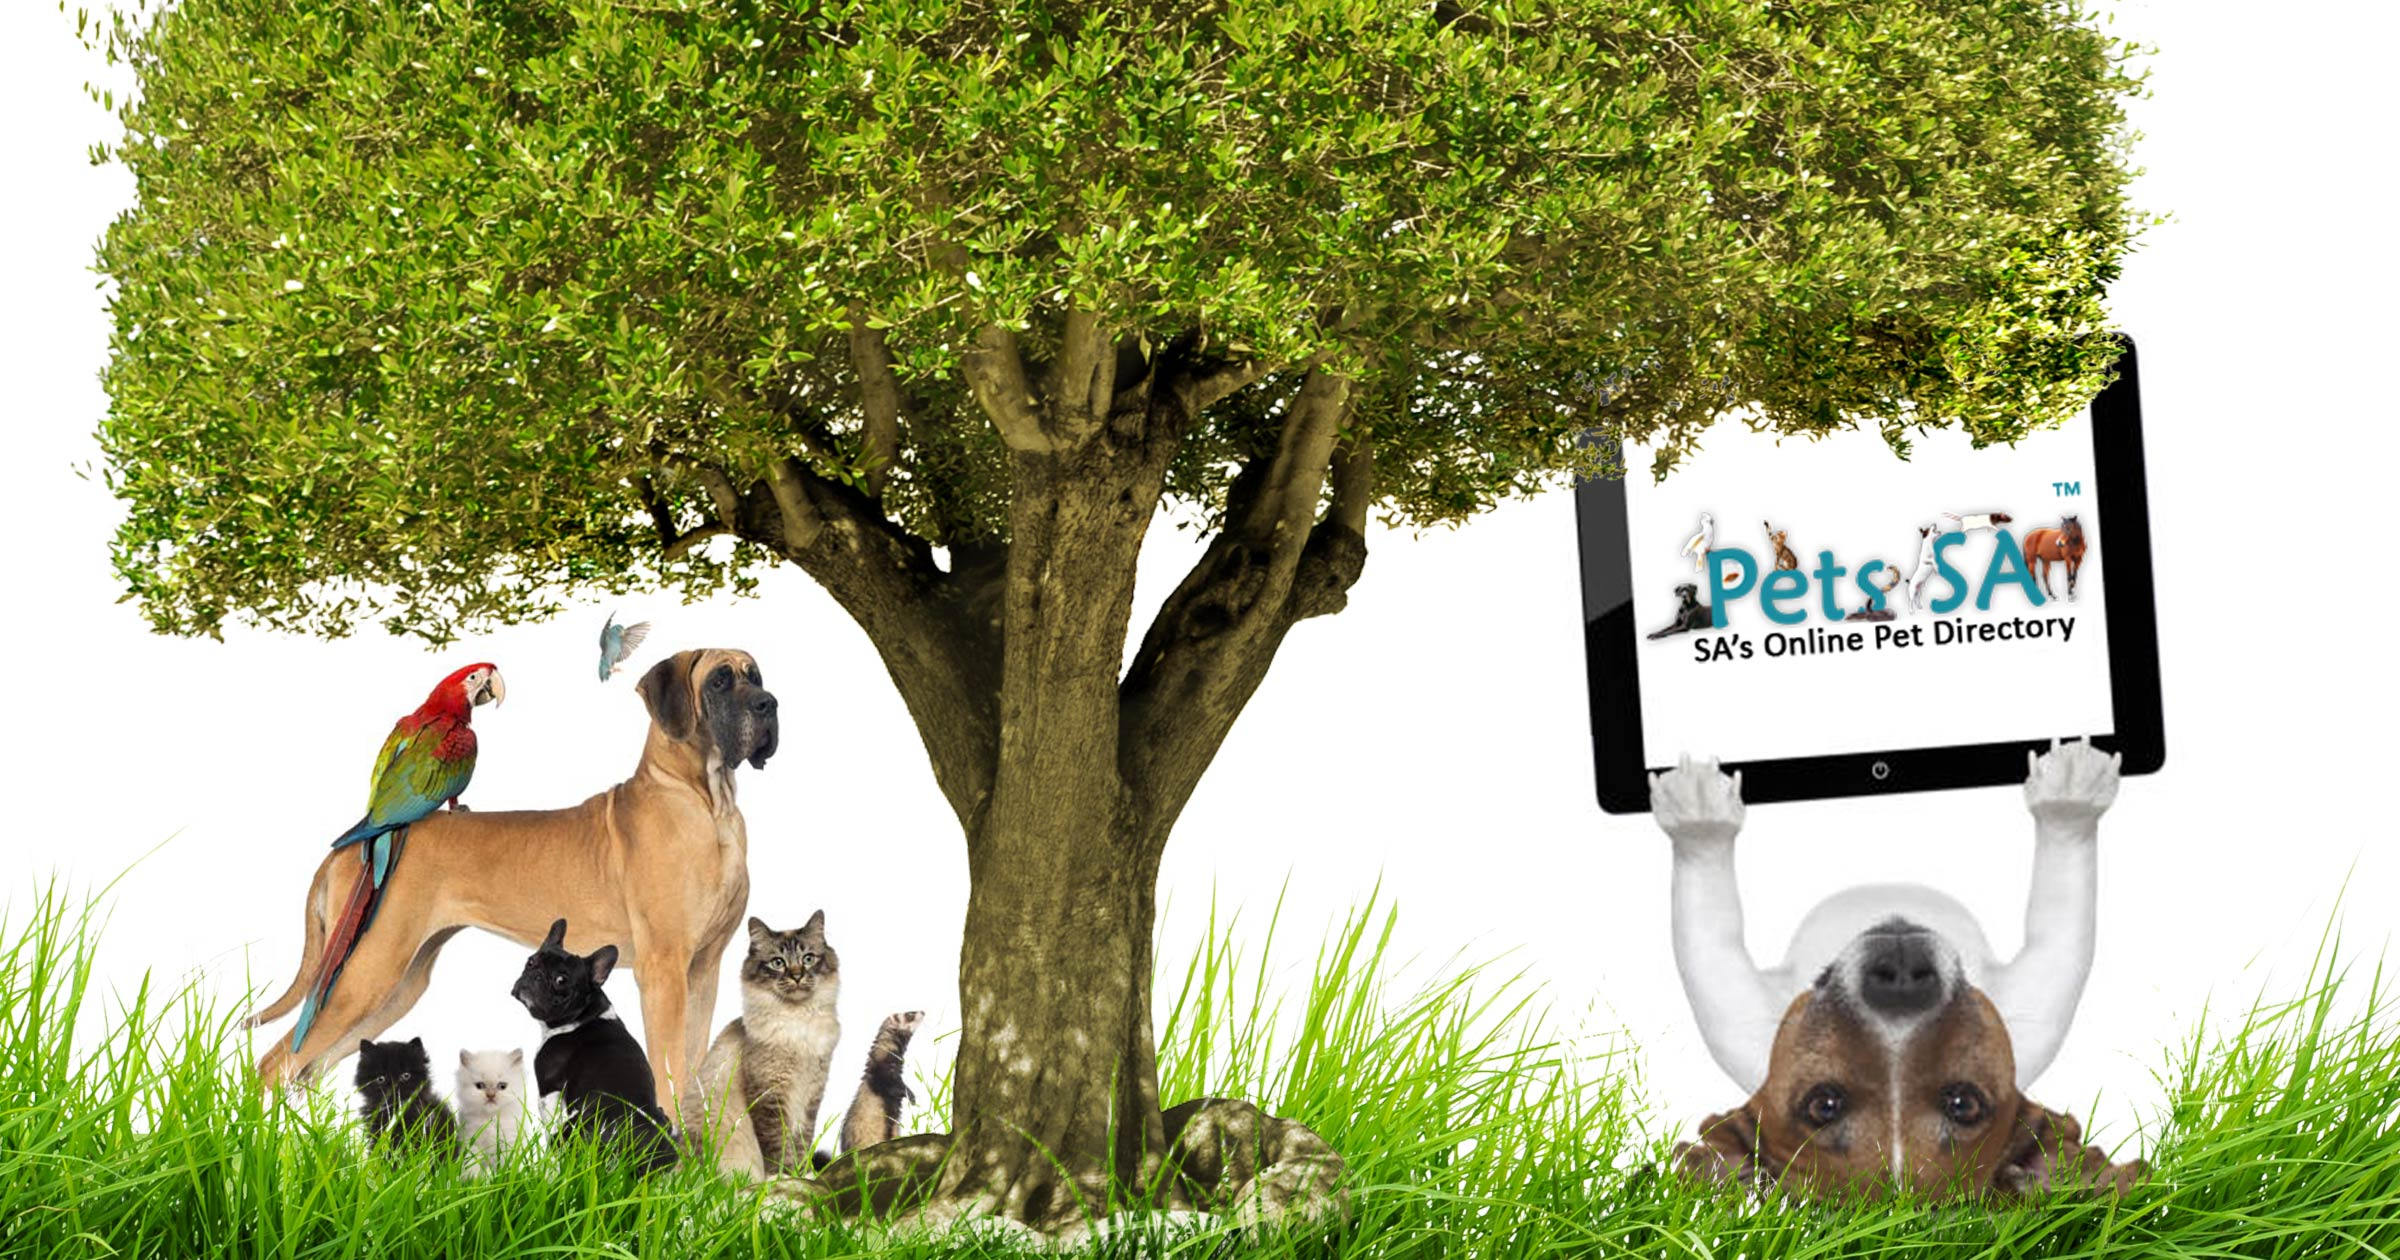 Classified ads 4 dogs, puppies, cats, pets in South Africa - Dogs